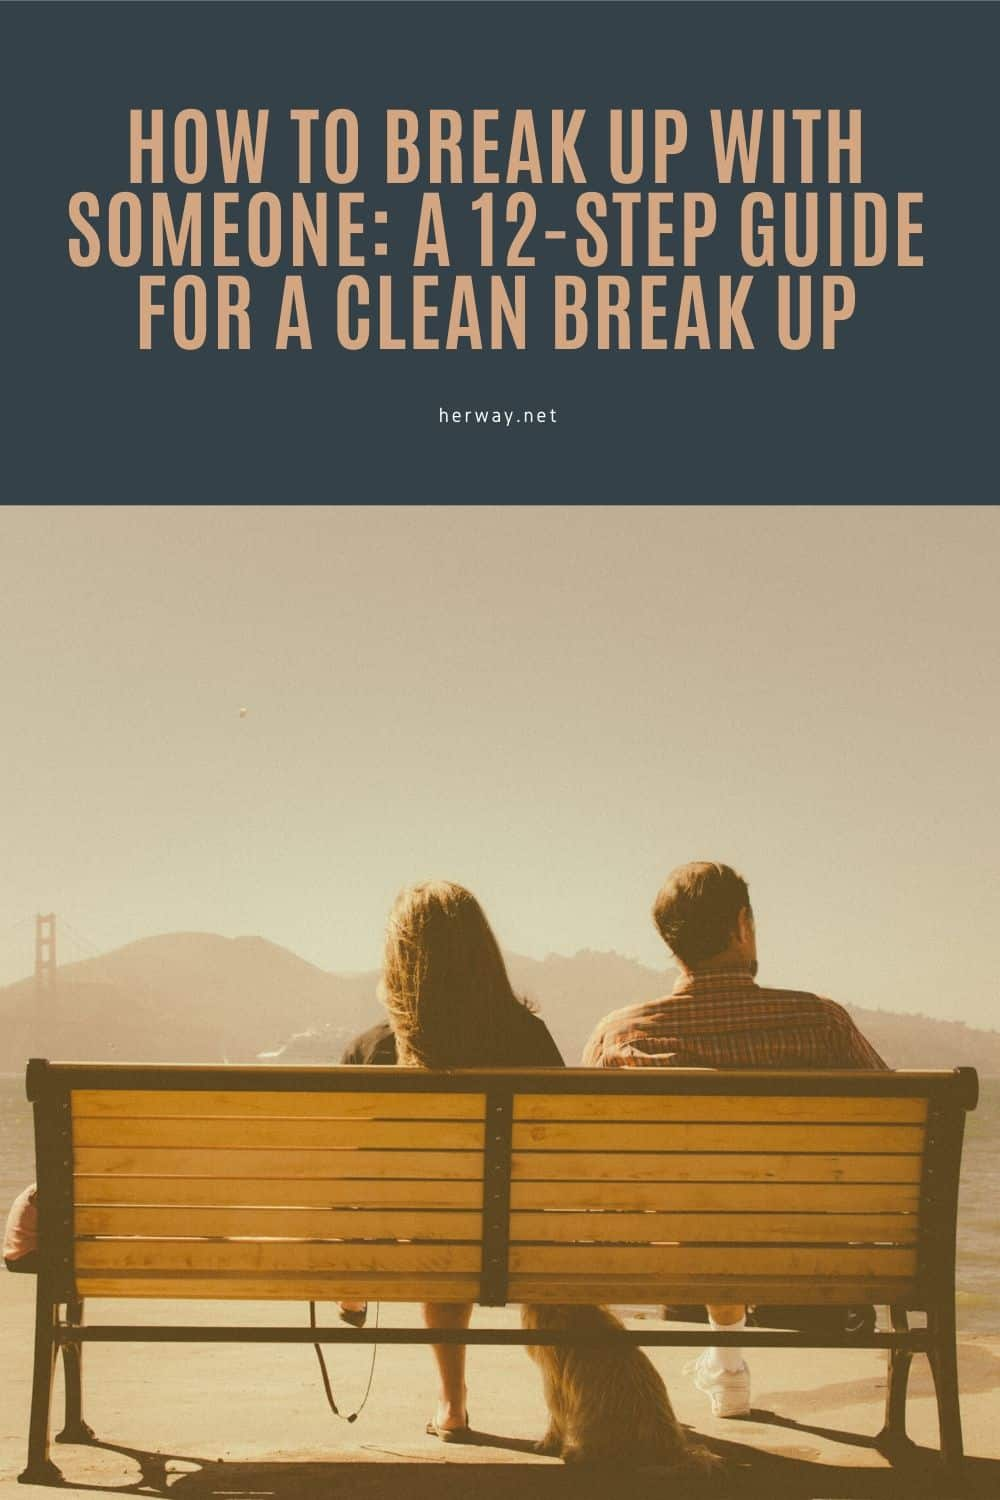 How To Break Up With Someone: A 12-Step Guide For A Clean Break Up